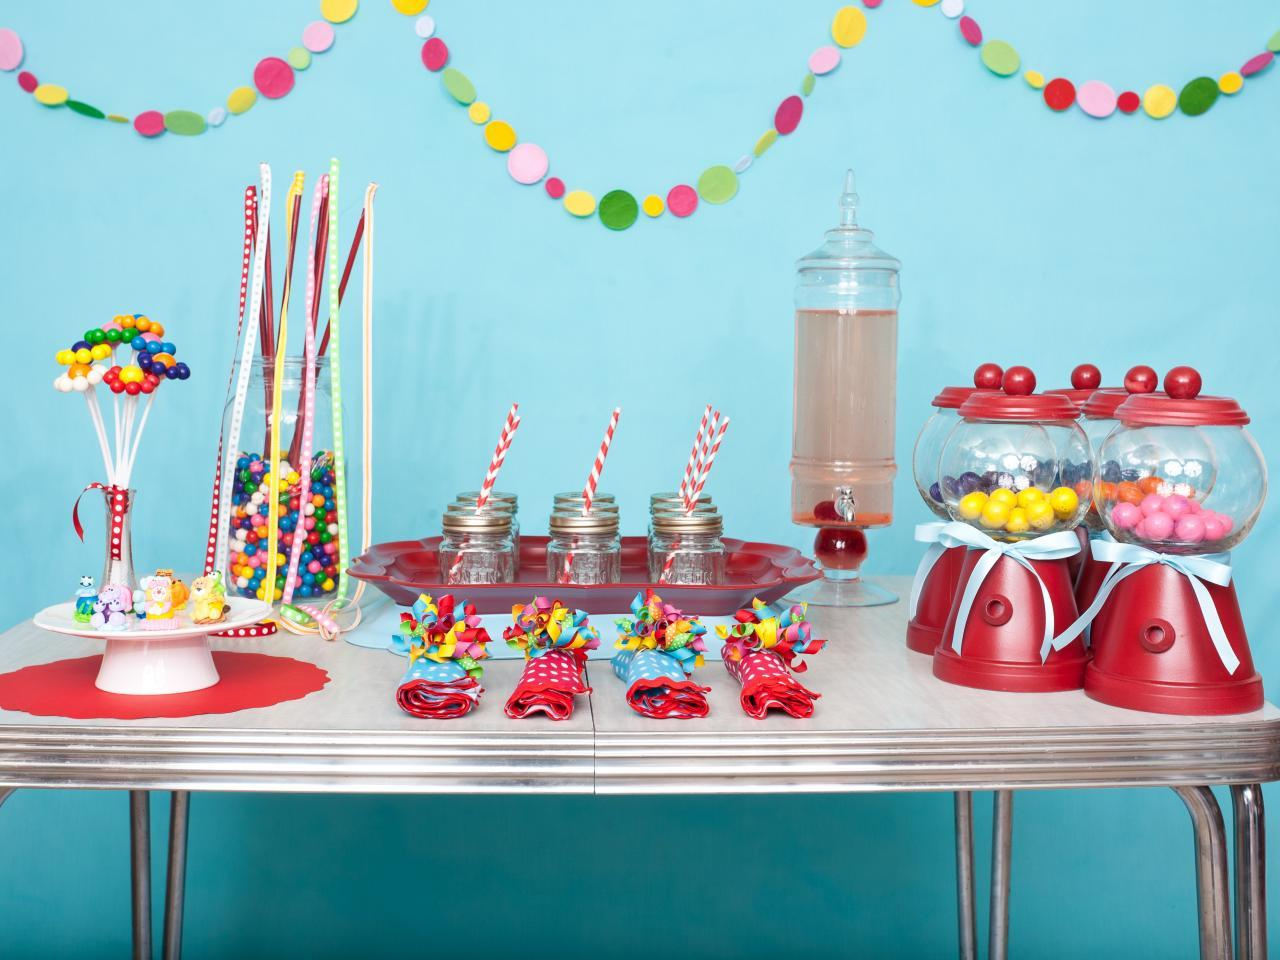 "Foto: Reprodução / <a href=""http://www.hgtv.com/design/make-and-celebrate/entertaining/diy-favors-and-decorations-for-kids-birthday-parties-pictures"" target=""_blank"">Hgtv</a>"